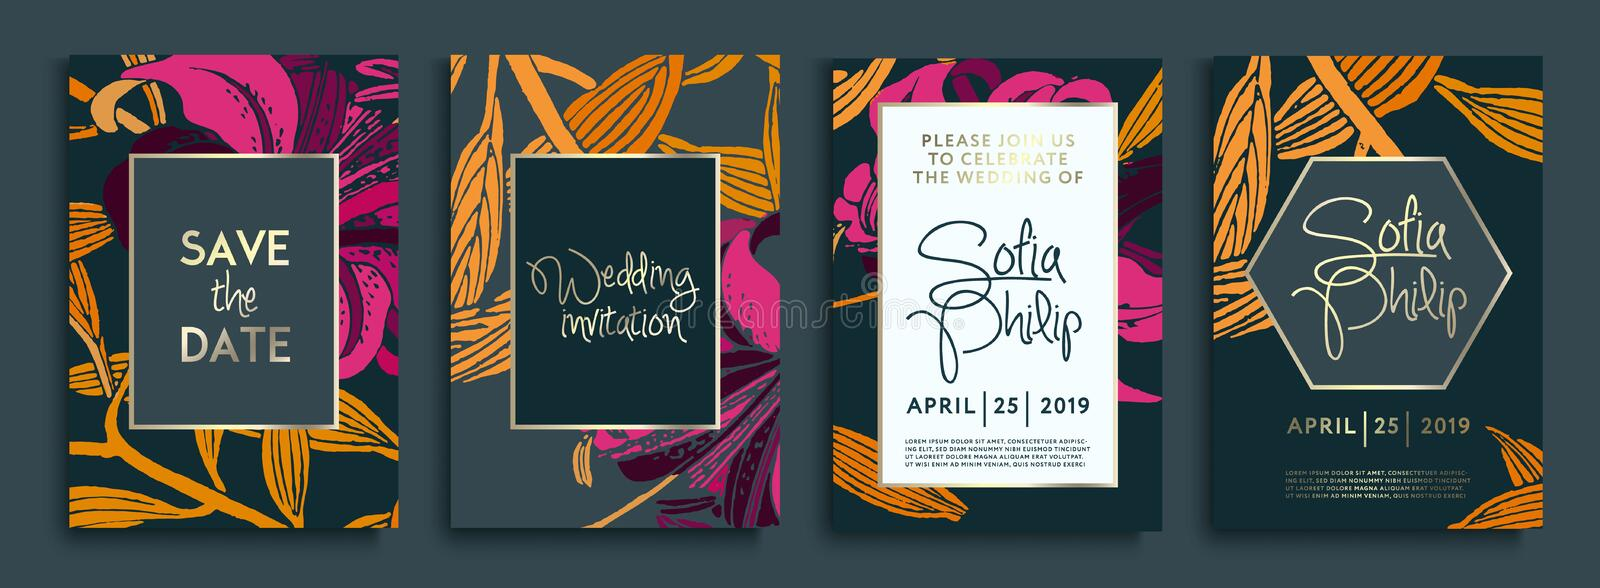 Wedding invitation with gold flowers and leaves on dark texture. luxury gold backgrounds, artistic covers design, colorful texture vector illustration